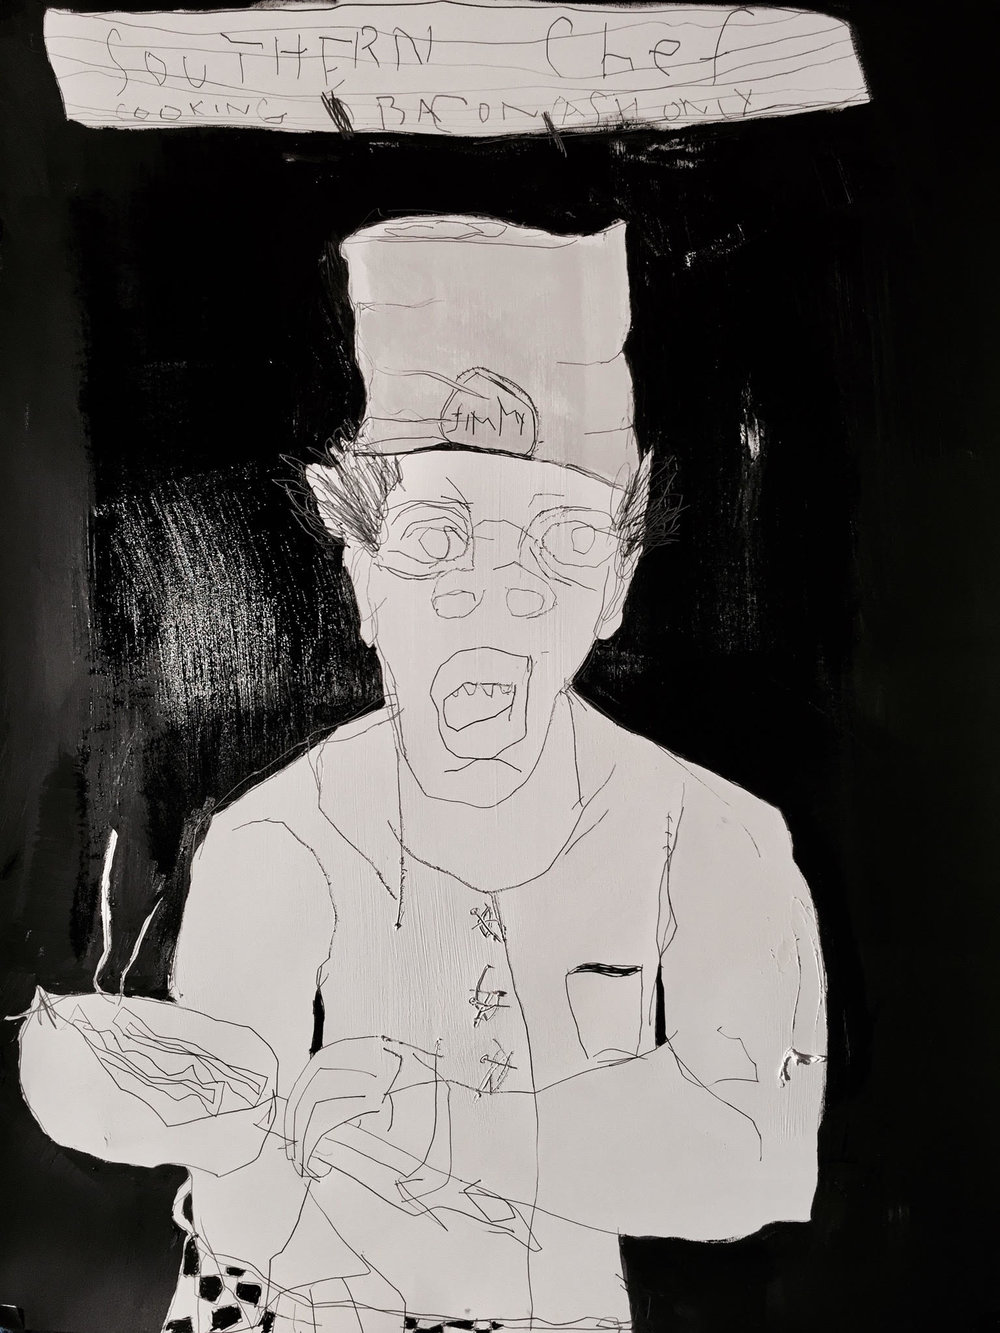 Dana Louise Kirkpatrick,  Southern Chef Cooking Bacon Cash Only ,2016, Oil, color pastel, graphite, and charcoal on Arches paper,50 x 38 ½ inches (127 x 96 cm) © Dana Louise Kirkpatrick. Private collection Chicago, Illinois.